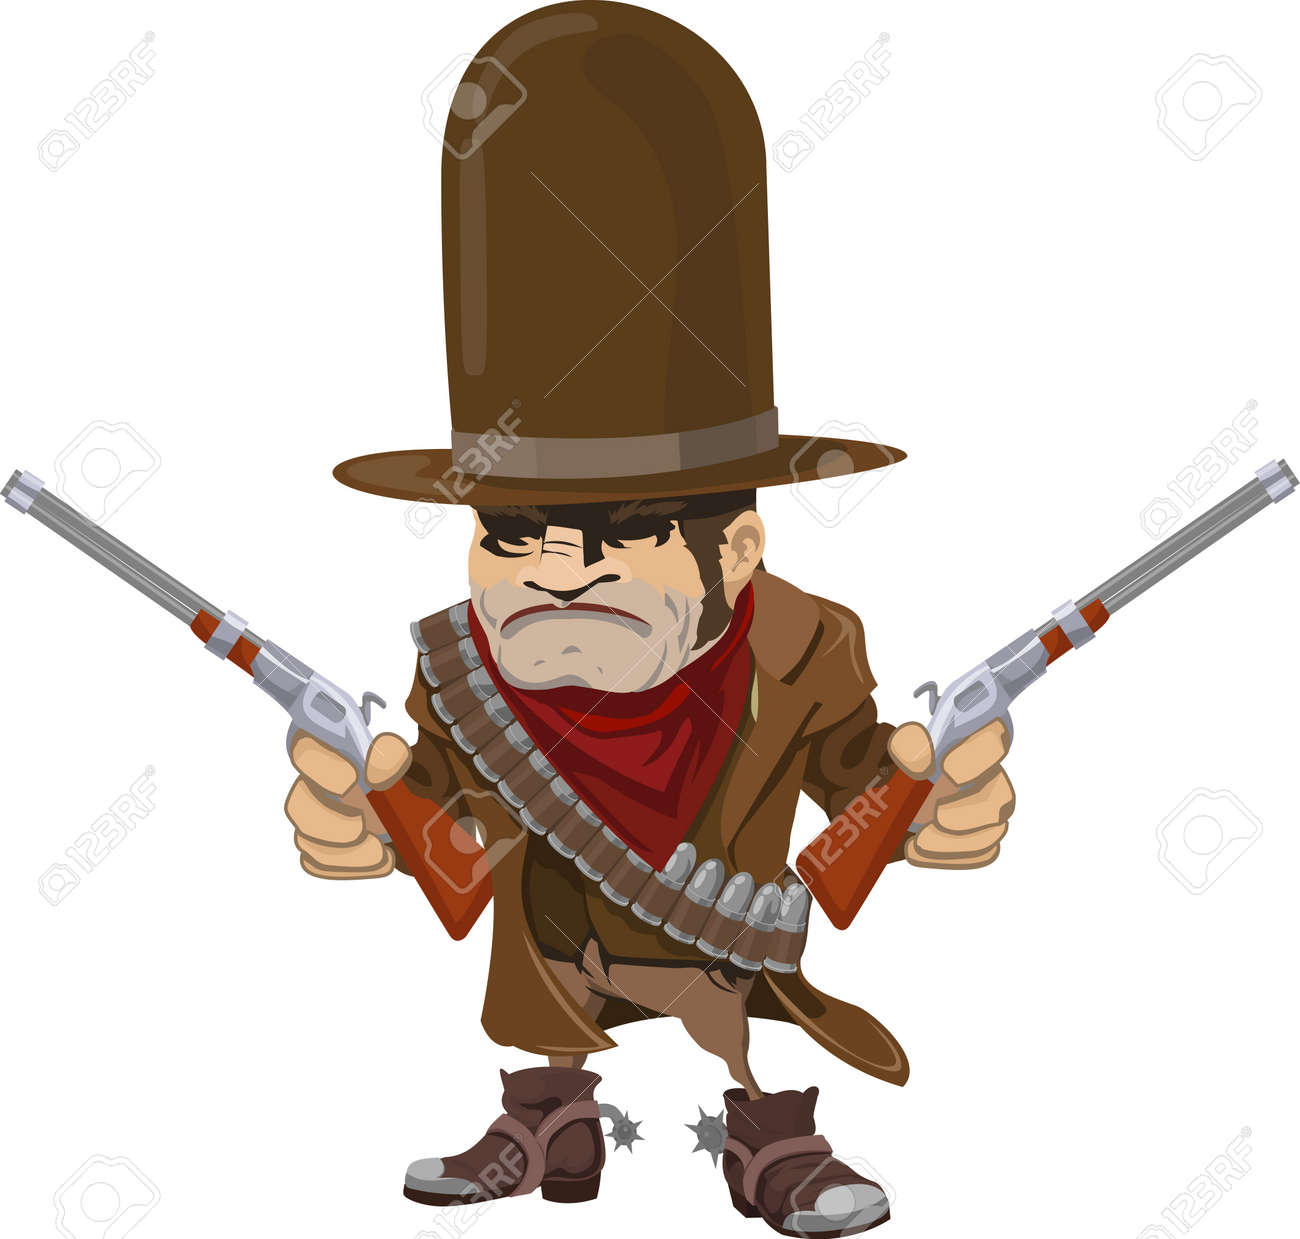 Illustration of cool mean looking cowboy gunman with rifles Stock Vector - 4325325